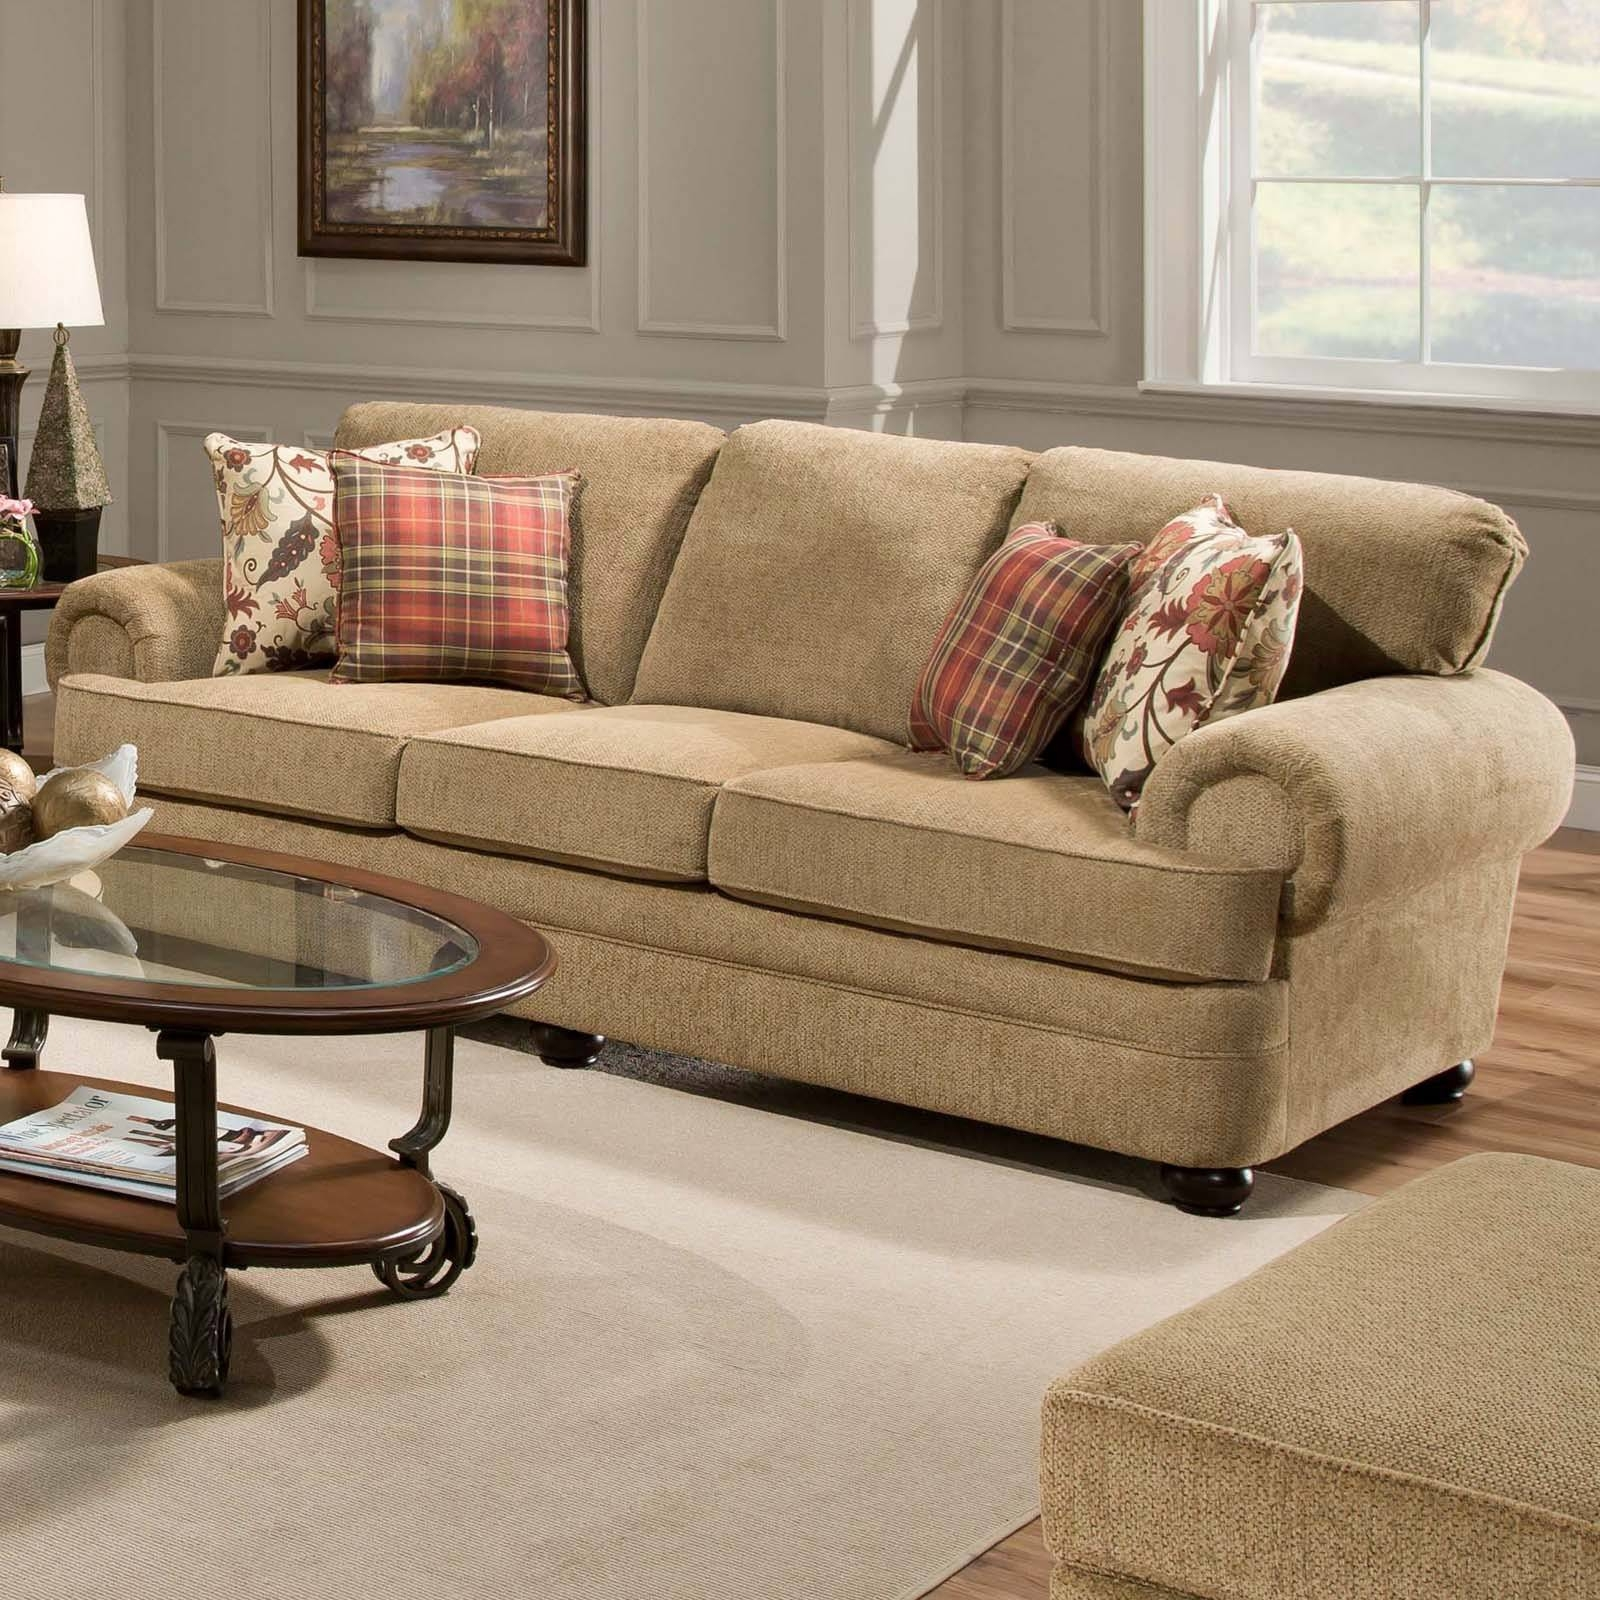 Simmons Upholstery Outback Chocolate Sofa Set | Hayneedle pertaining to Simmons Sofas (Image 12 of 15)